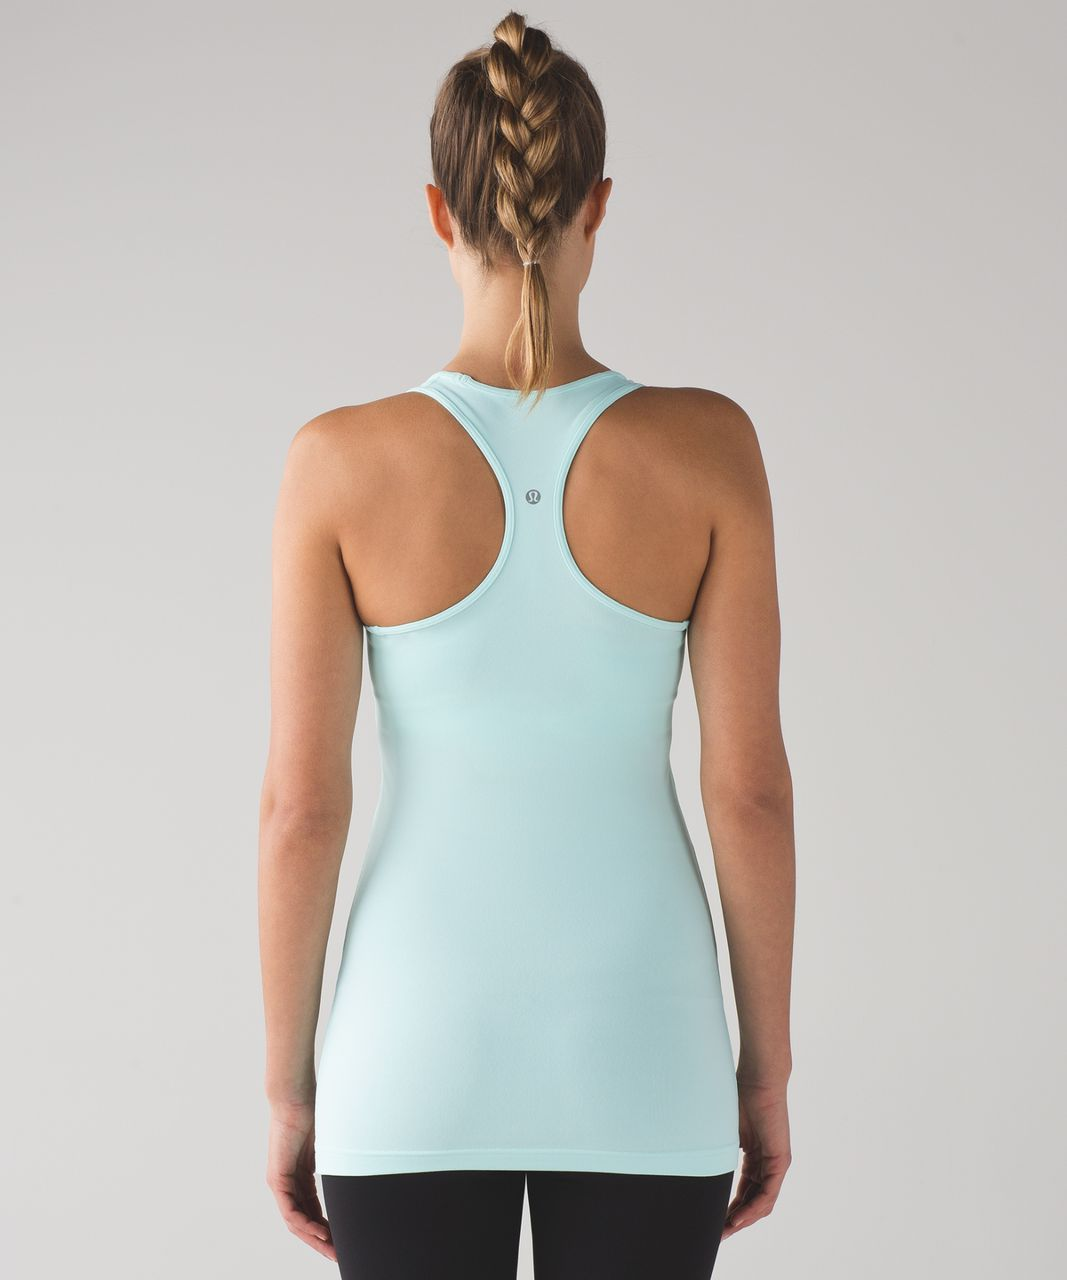 Lululemon Cool Racerback - Aquamarine (First Release)